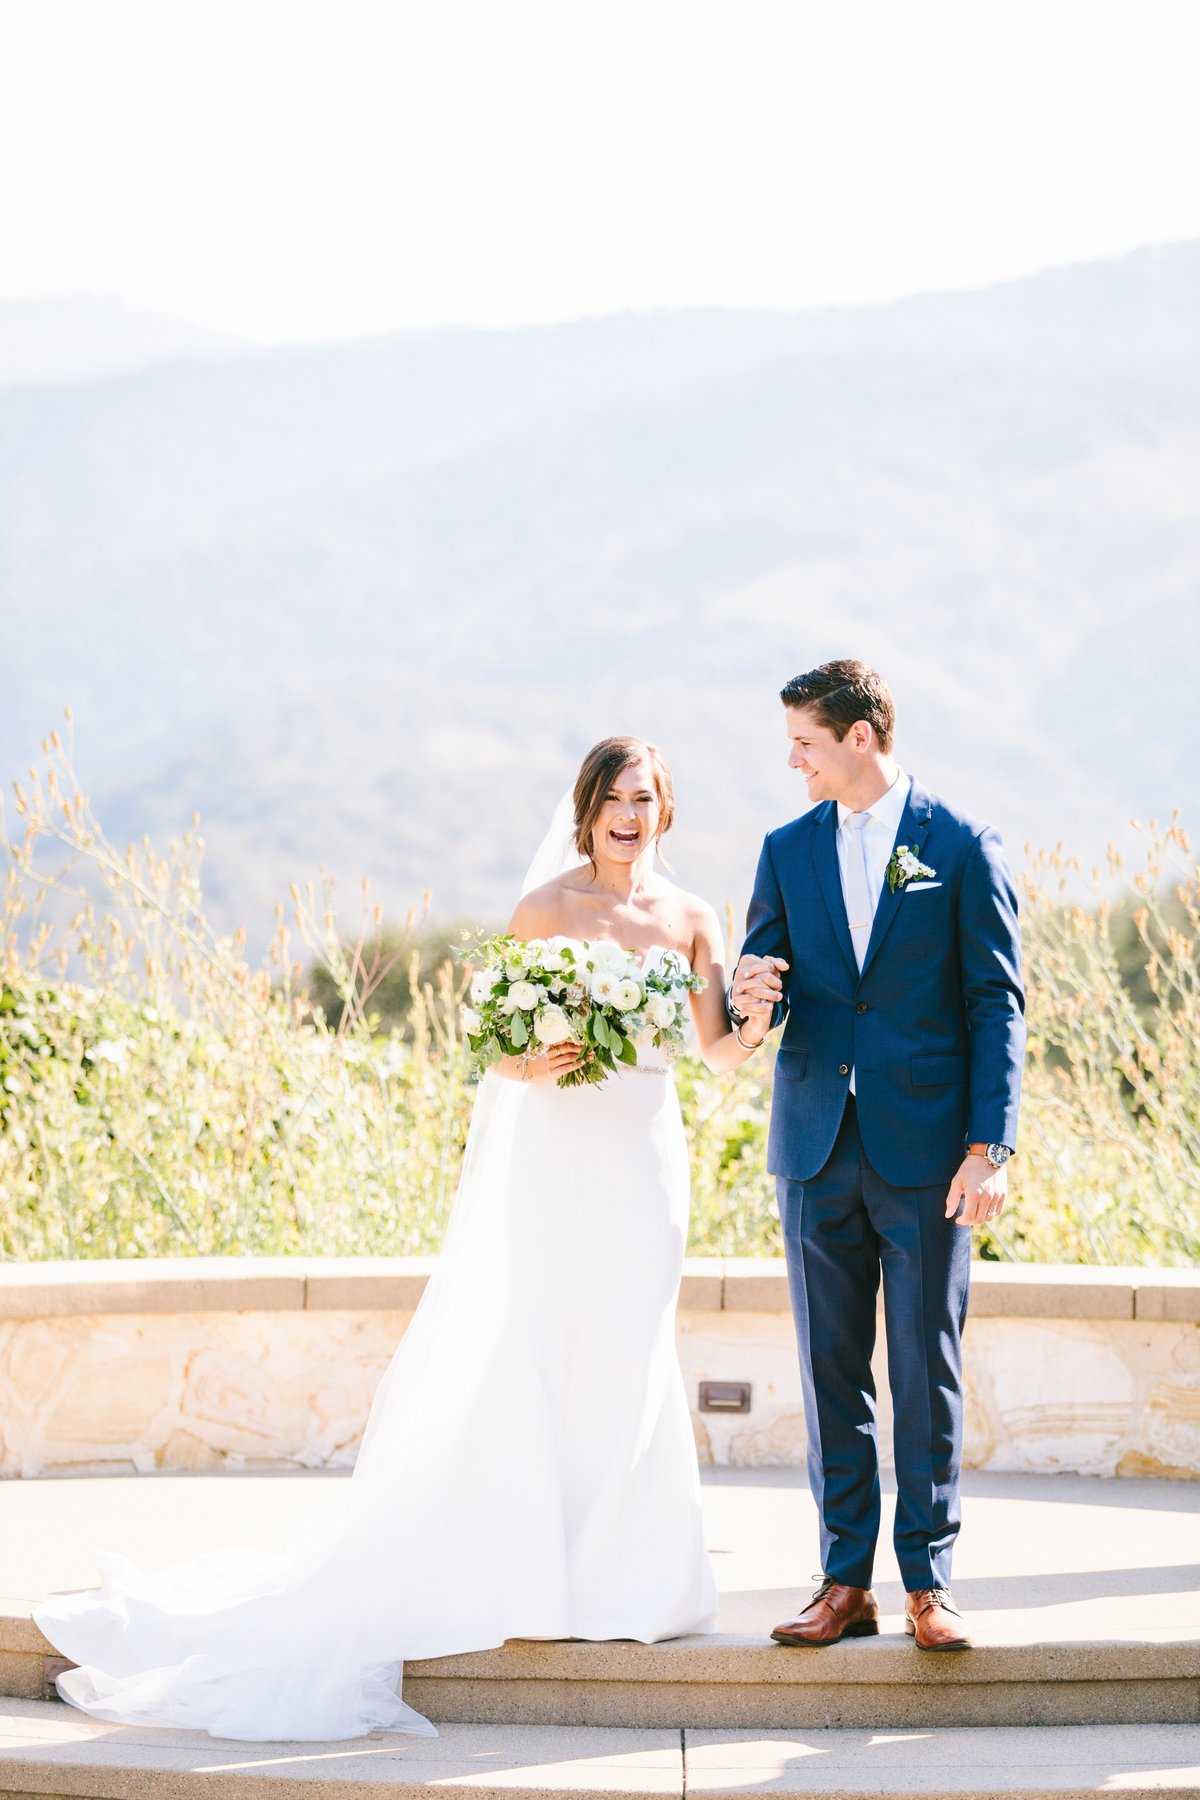 Best California Wedding Photographer-Jodee Debes Photography-49